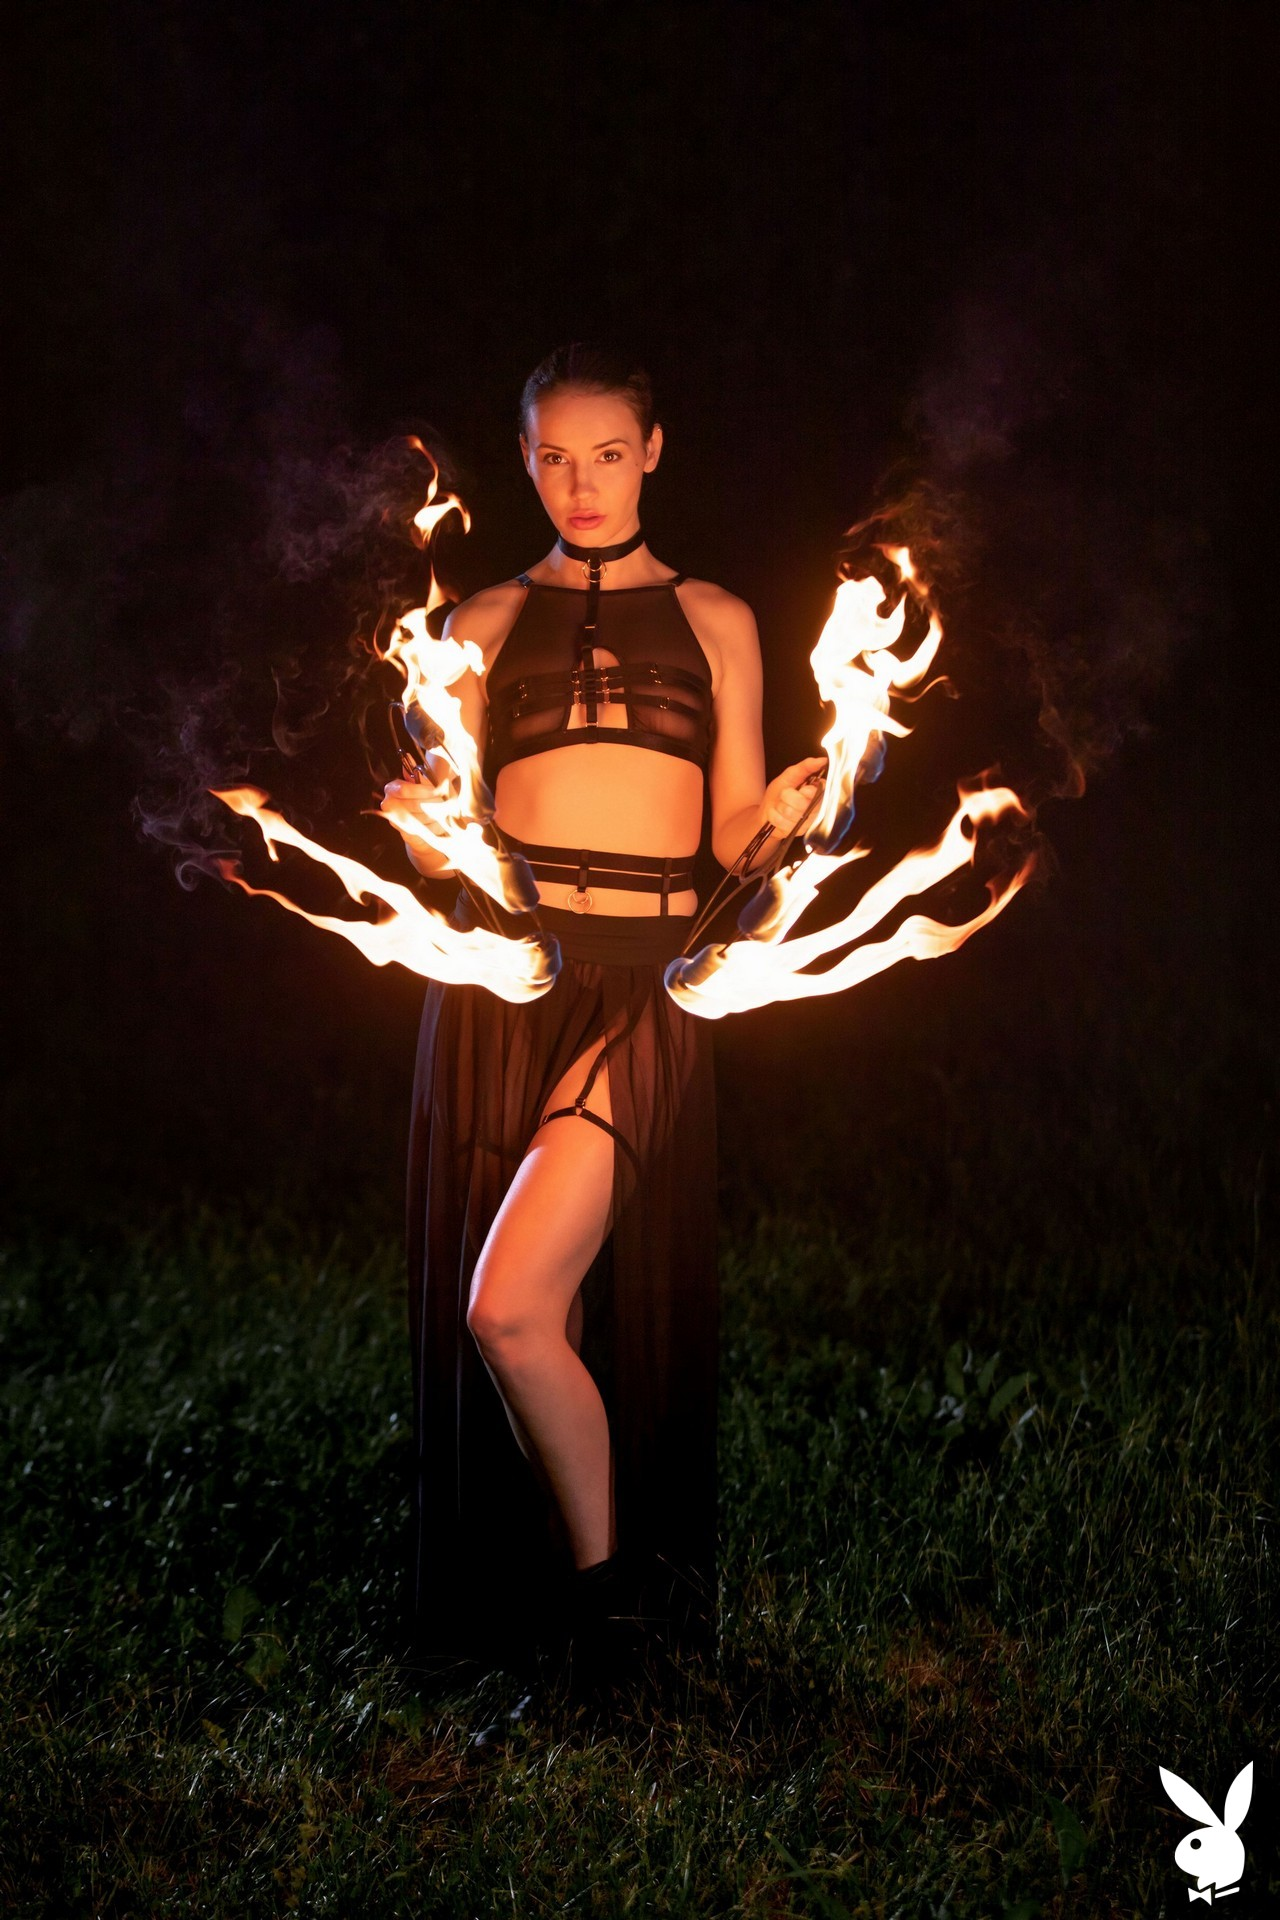 Elilith Noir In Playing With Fire Playboy Plus (1)